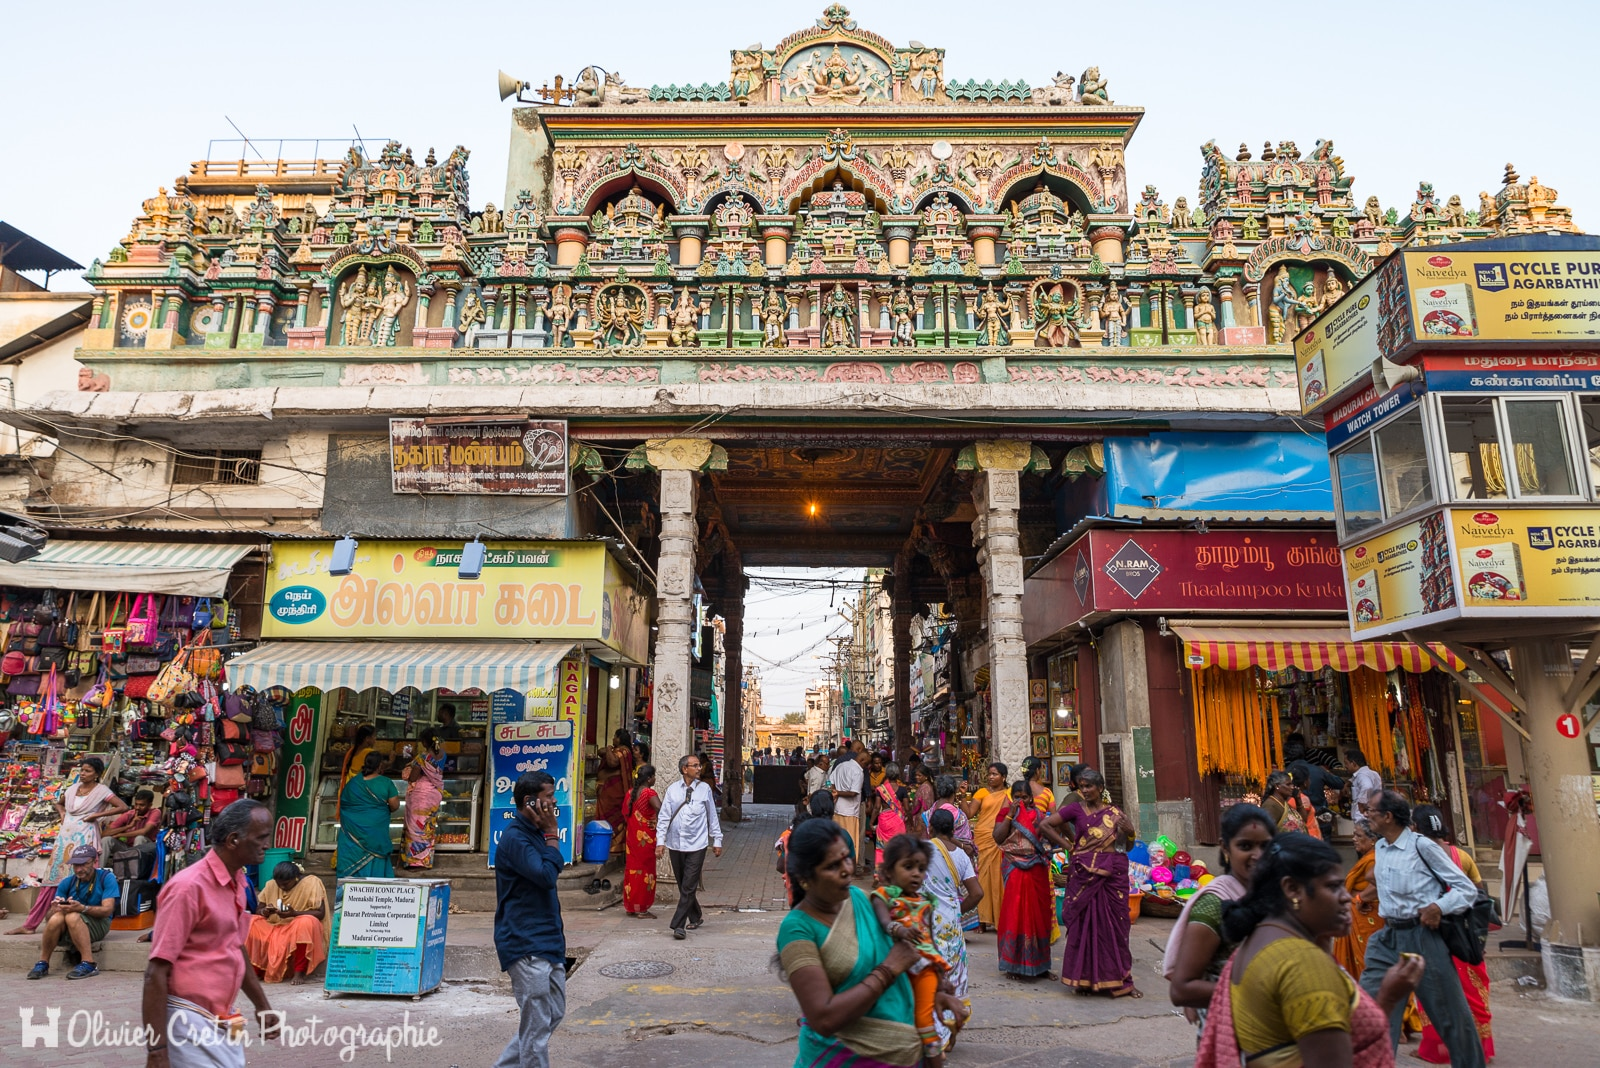 Madurai sites de rencontre